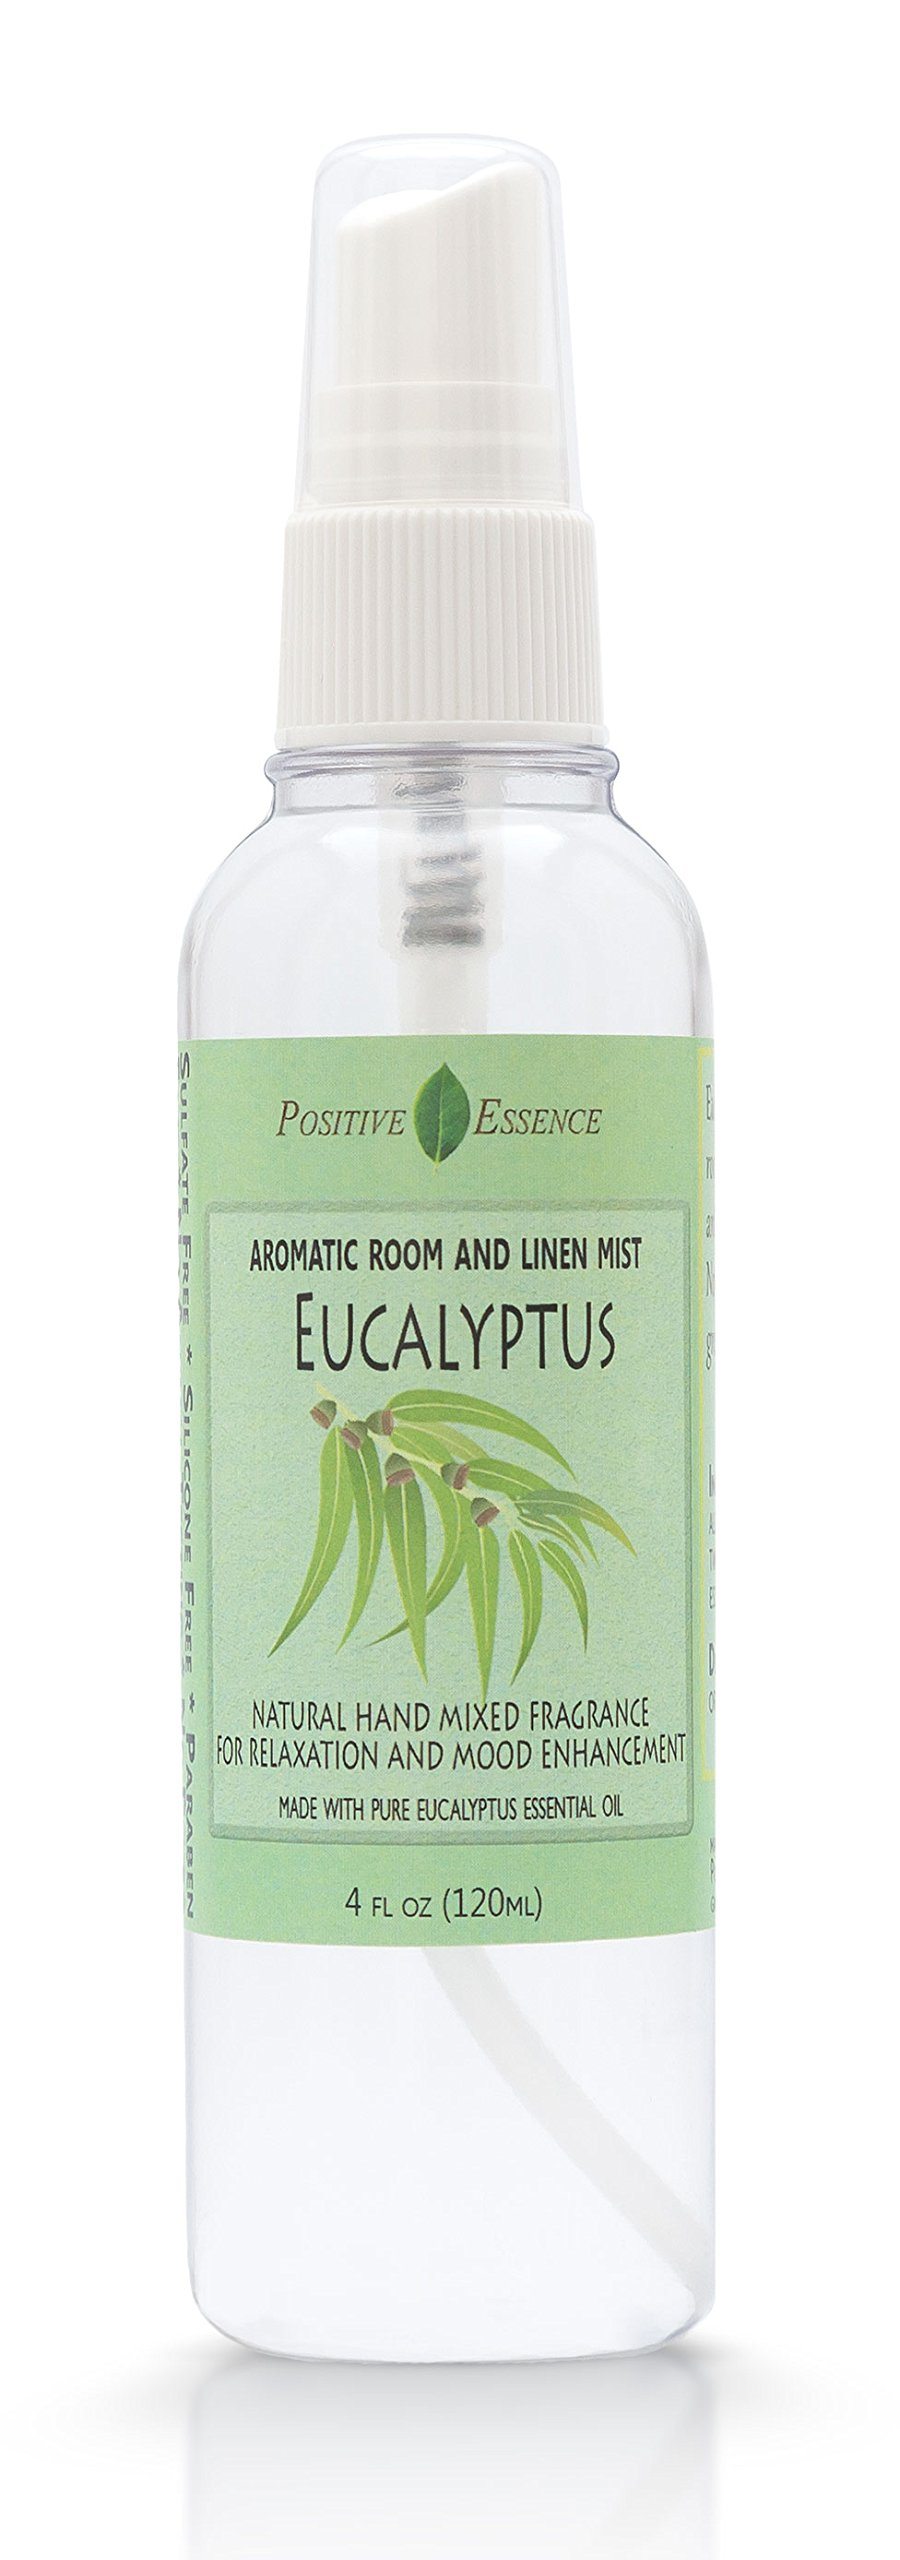 Positive Essence Eucalyptus Linen and Room Spray, Natural Aromatic Mist Made with Pure Eucalyptus Essential Oil, Relax Your Body & Mind, Refreshing Air Freshener Odor Eliminator by Positive Essence